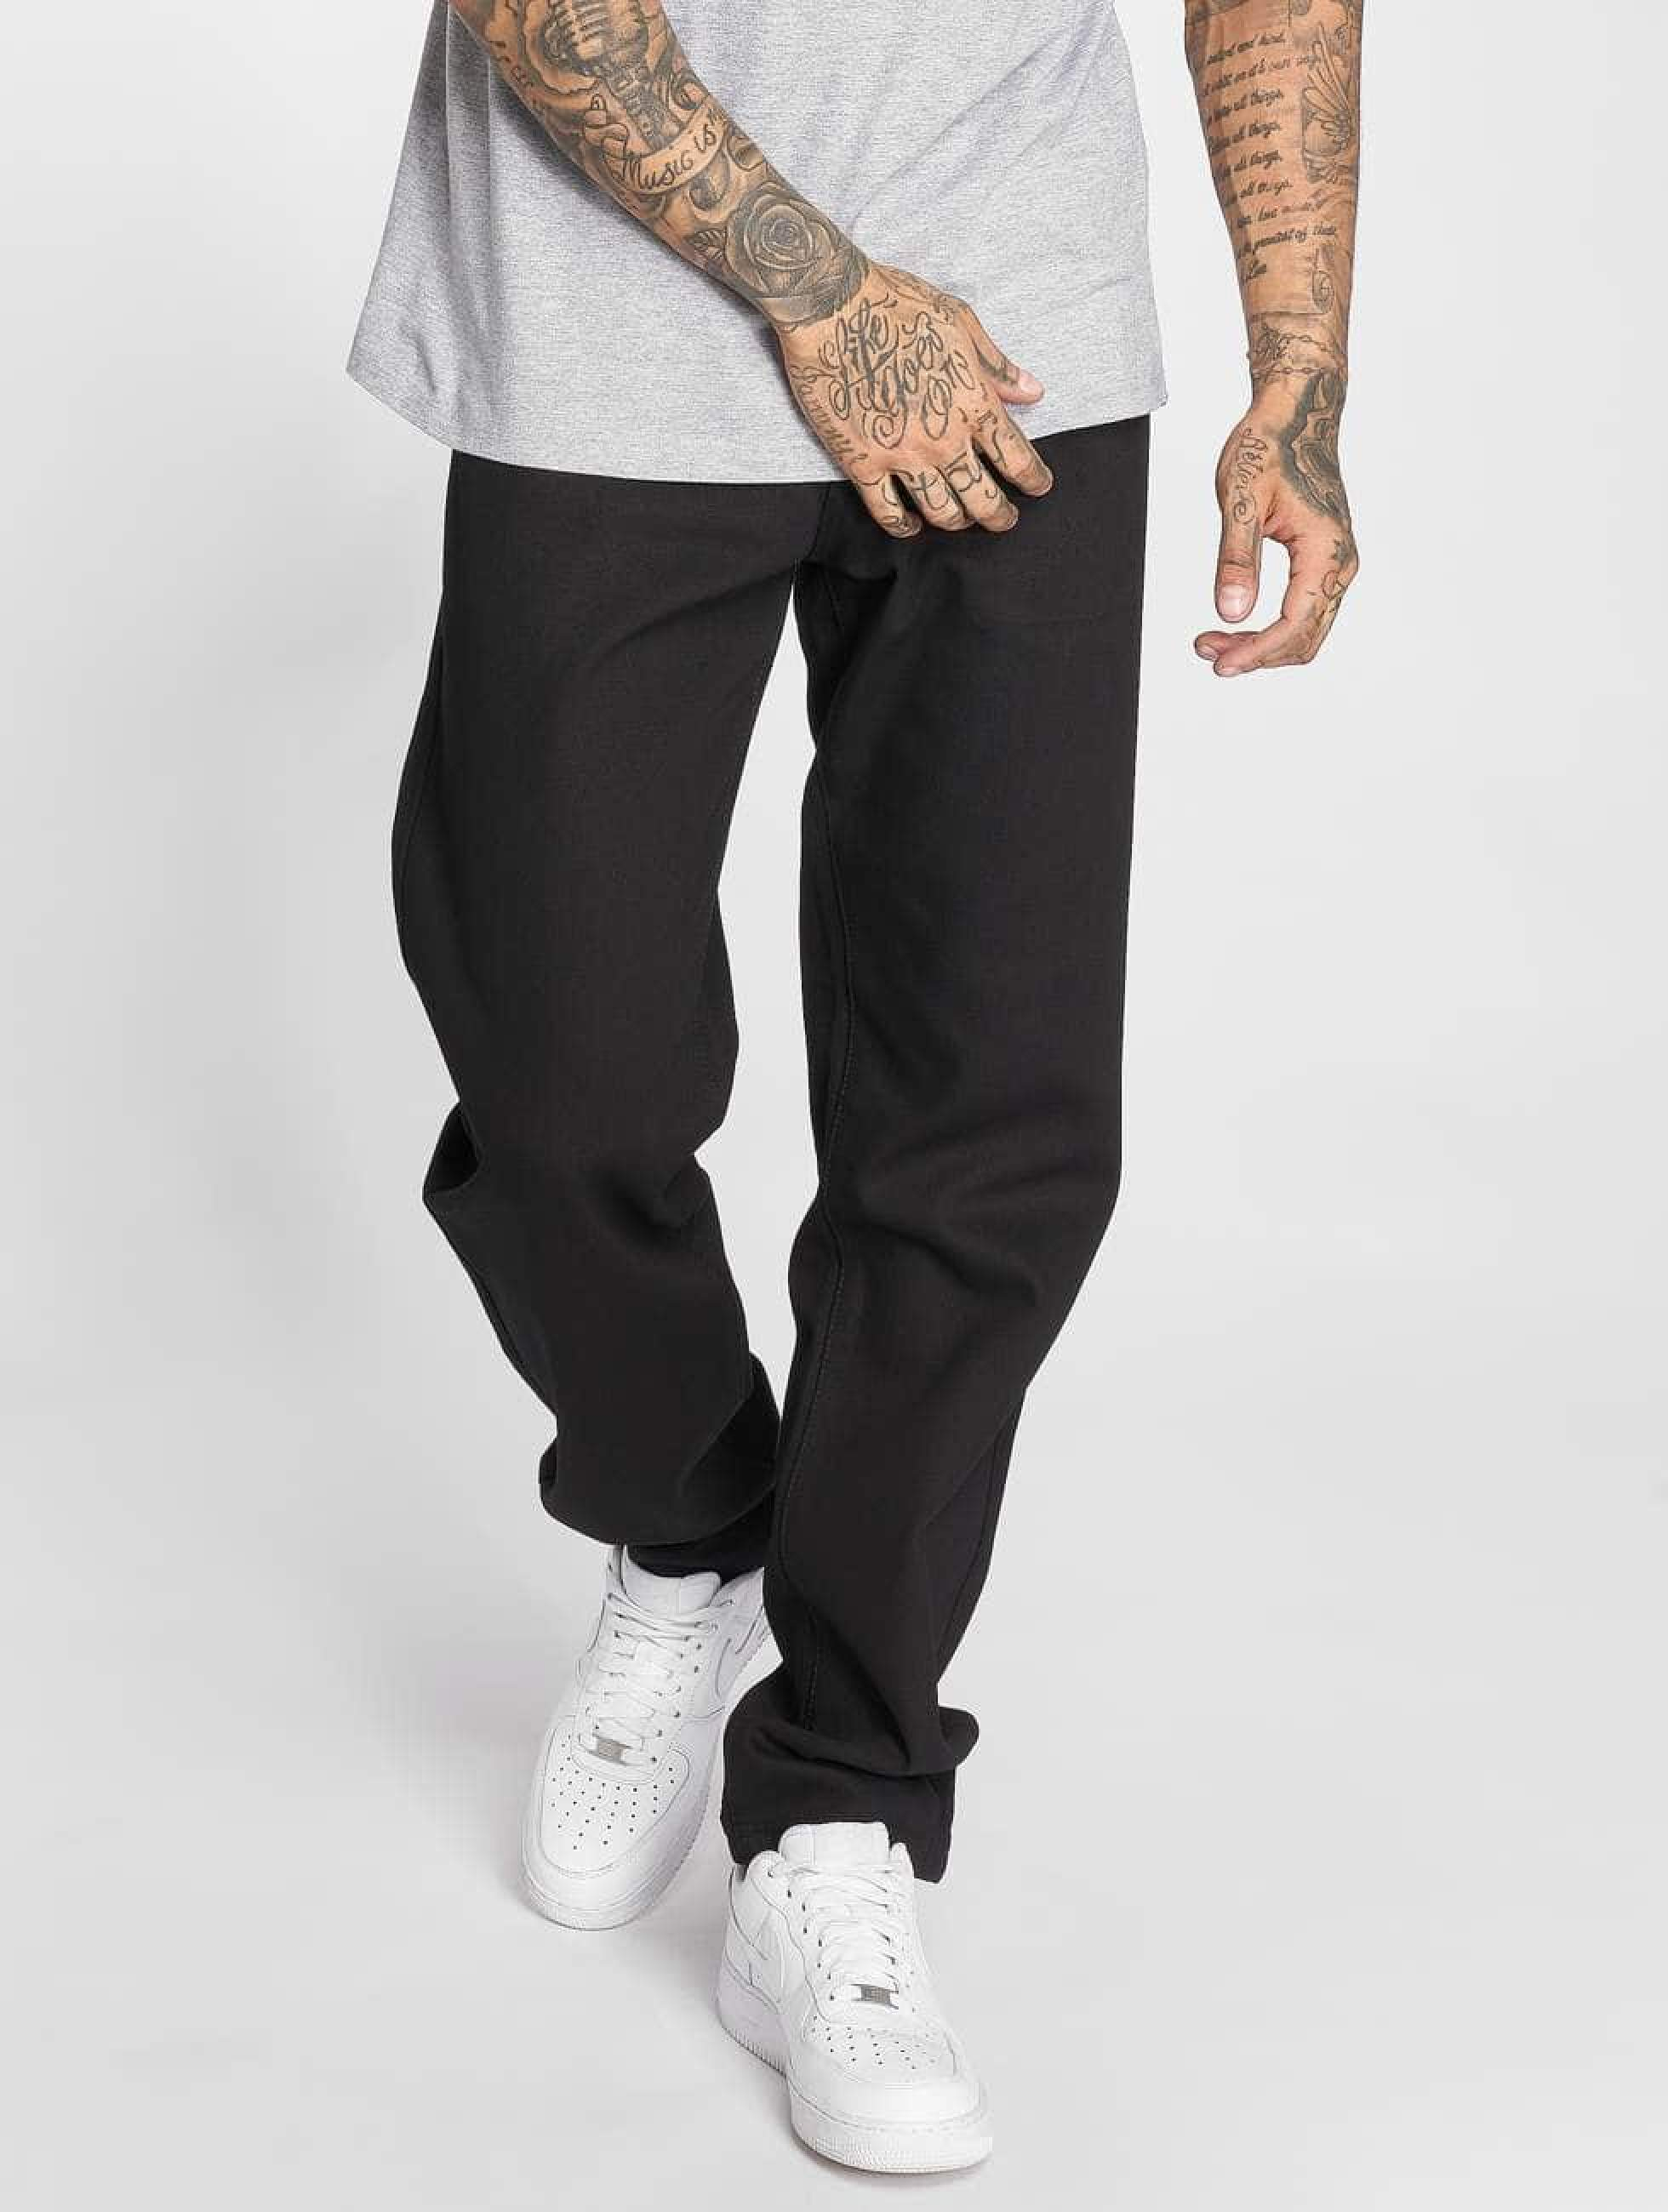 Thug Life / Carrot Fit Jeans B . Denim in black W 32 L 32